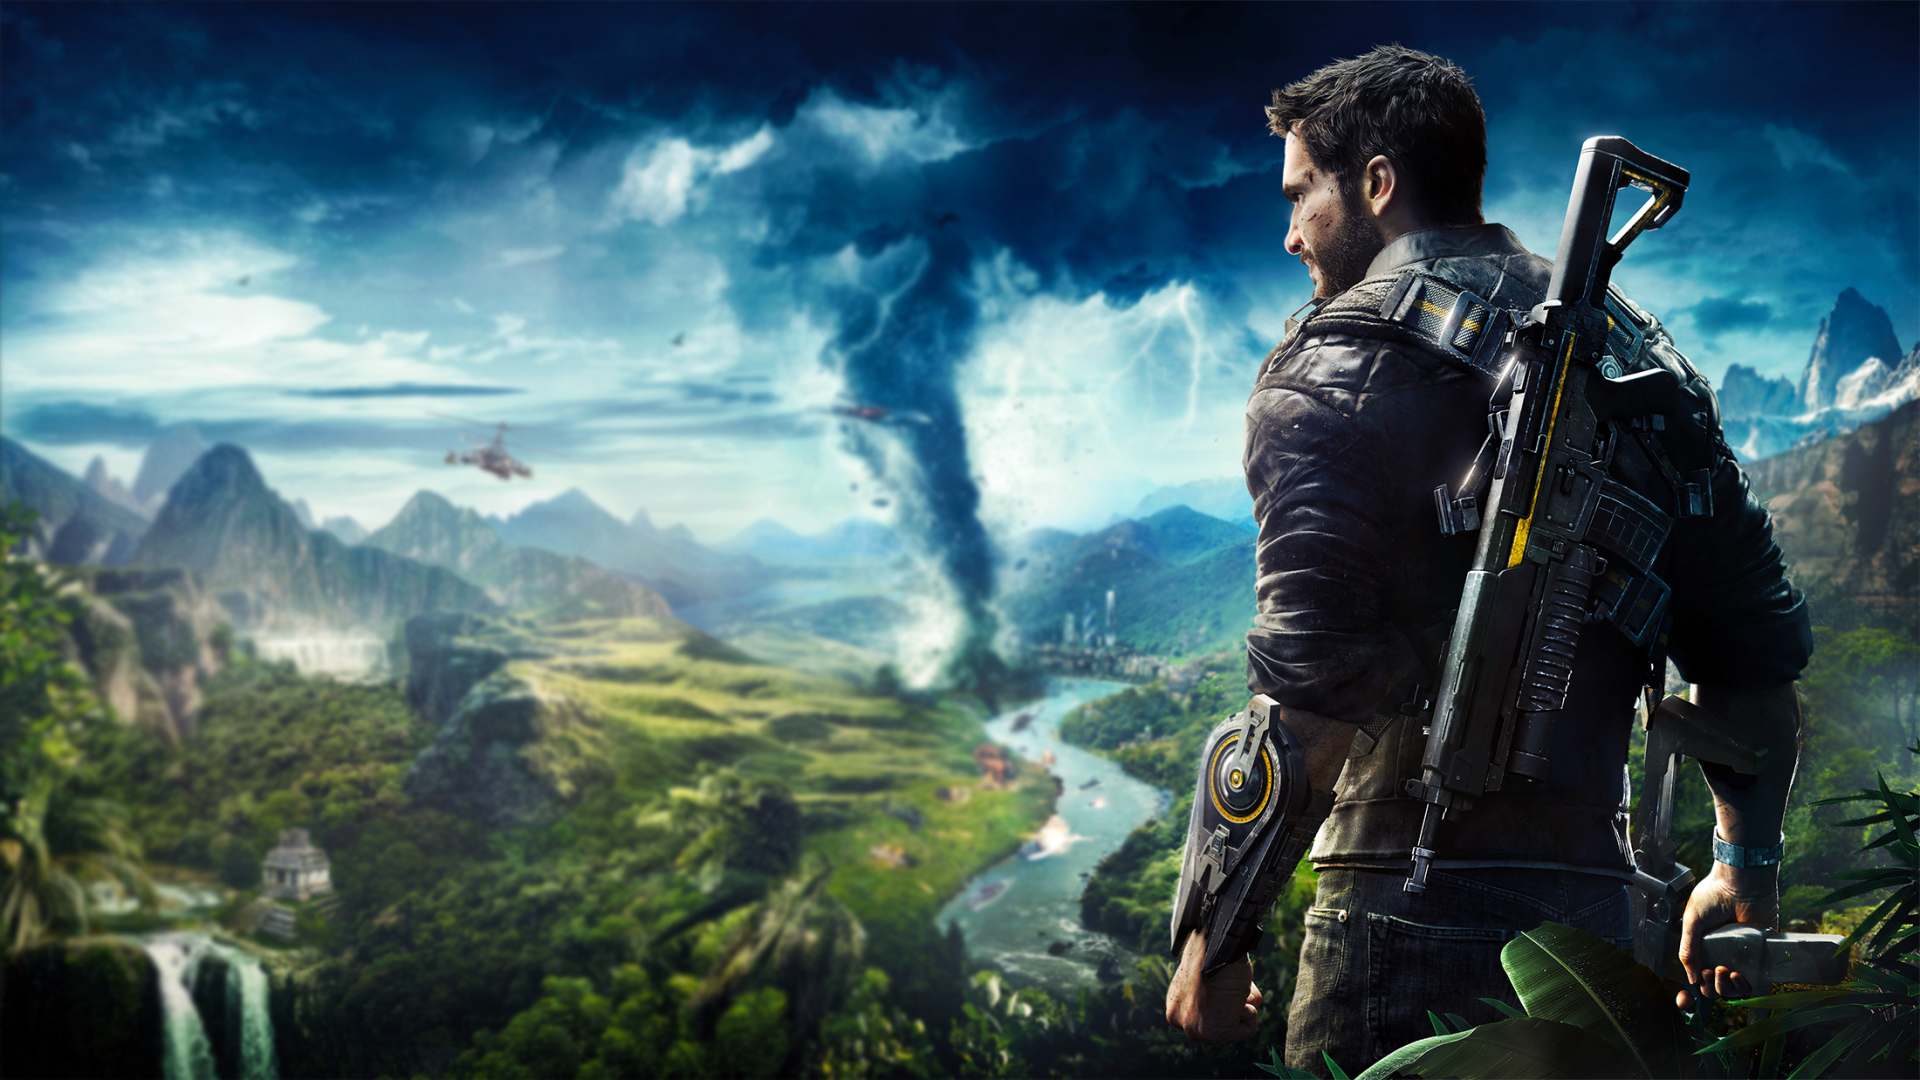 Video Game - Just Cause 4 Rico Rodriguez (Just Cause) Video Game Wallpaper